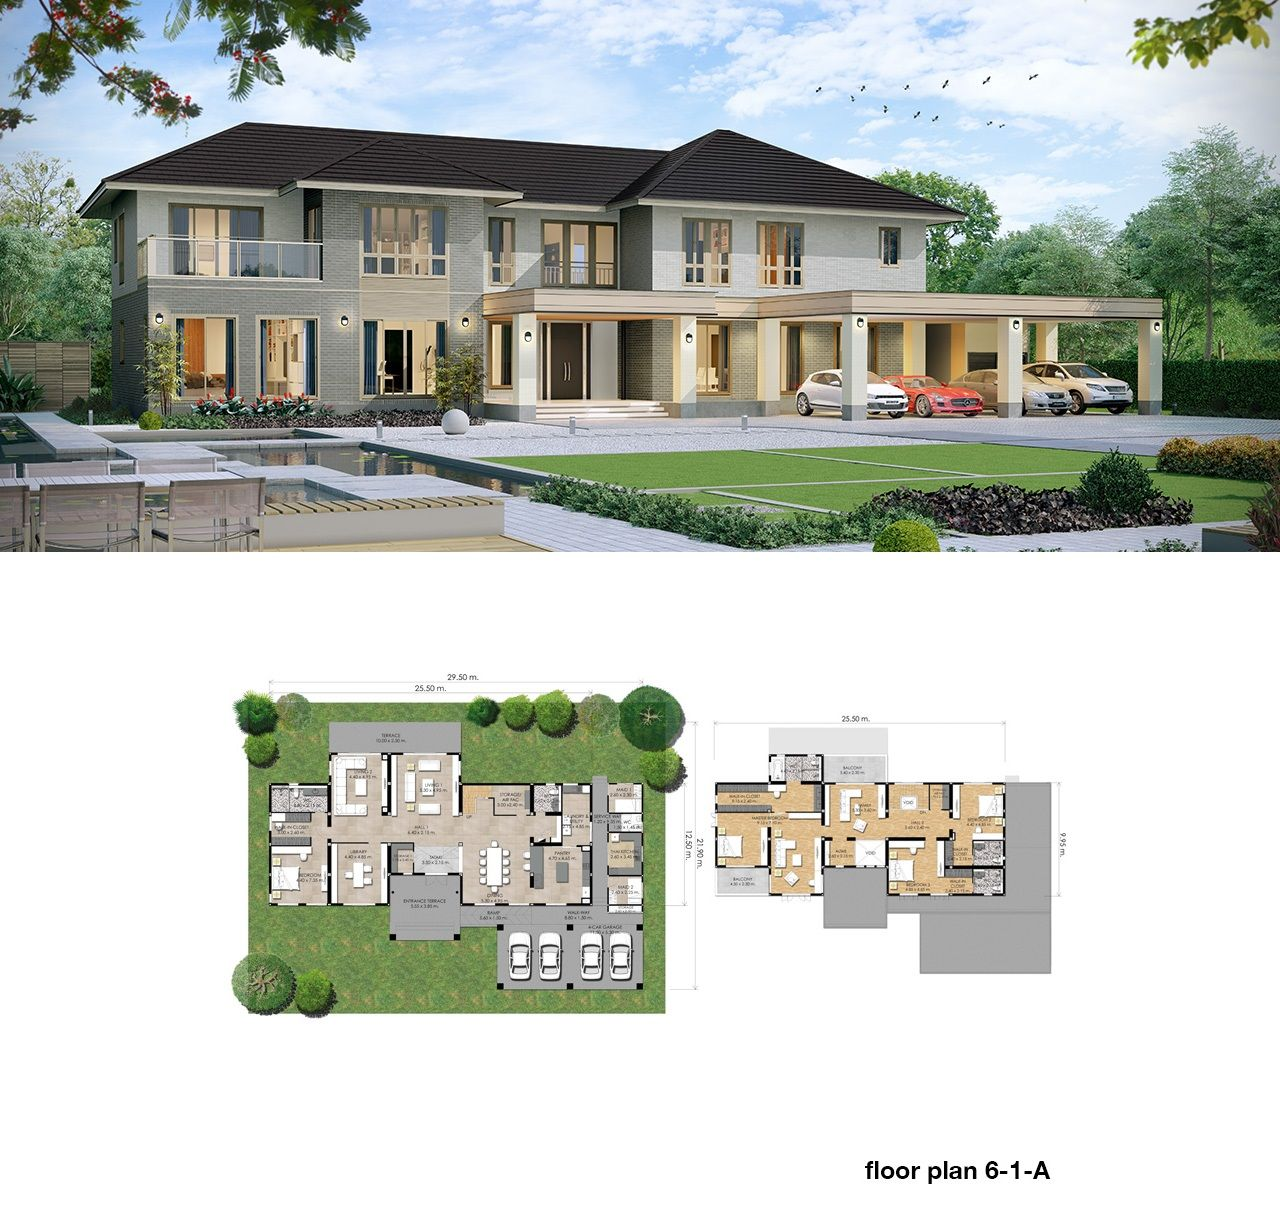 Scg heim house map layouts luxury houses dream front also  could never afford in pinterest rh